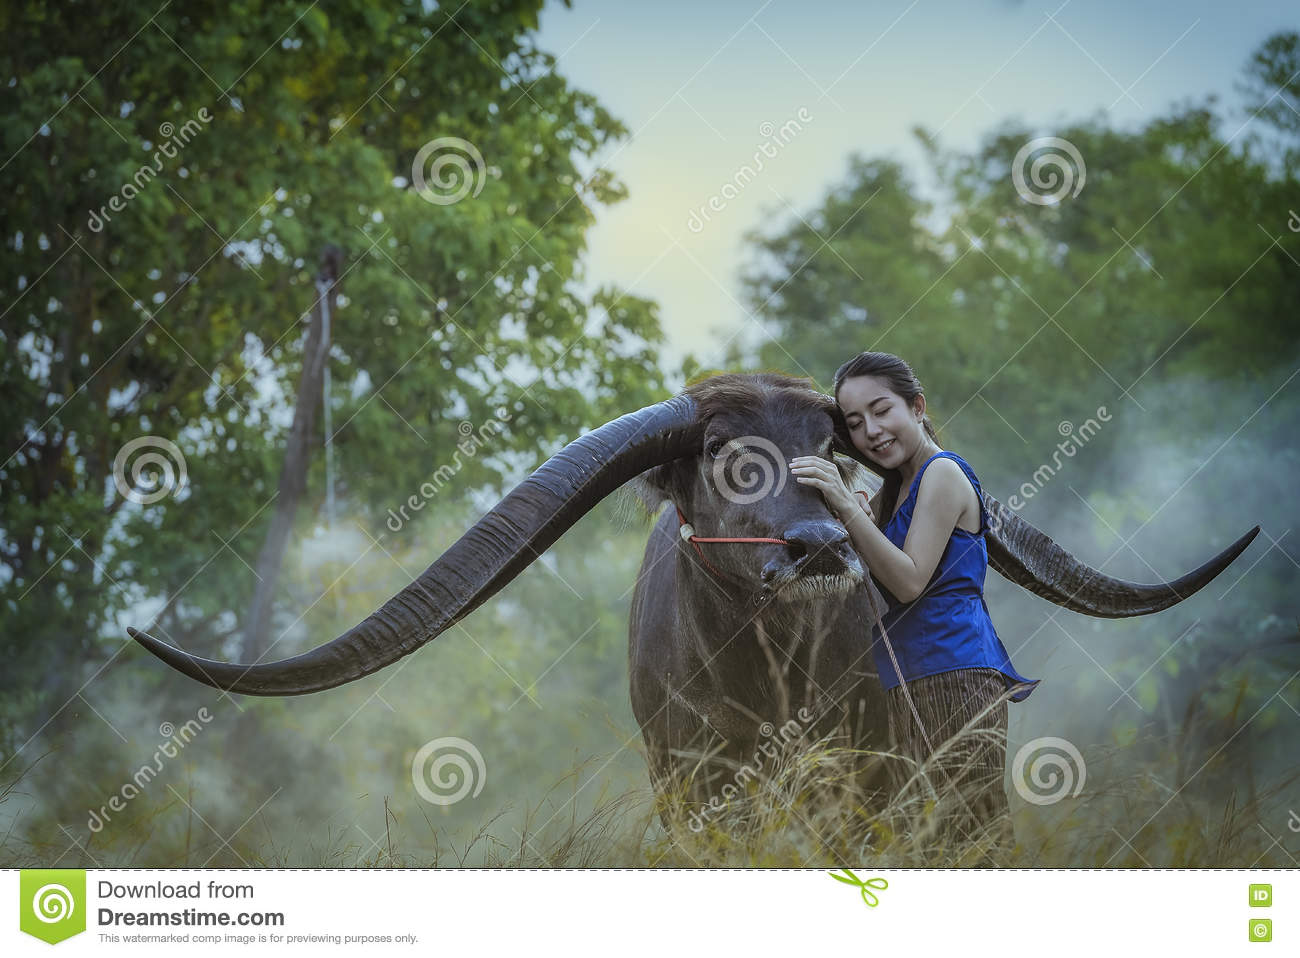 The girl with Buffalo